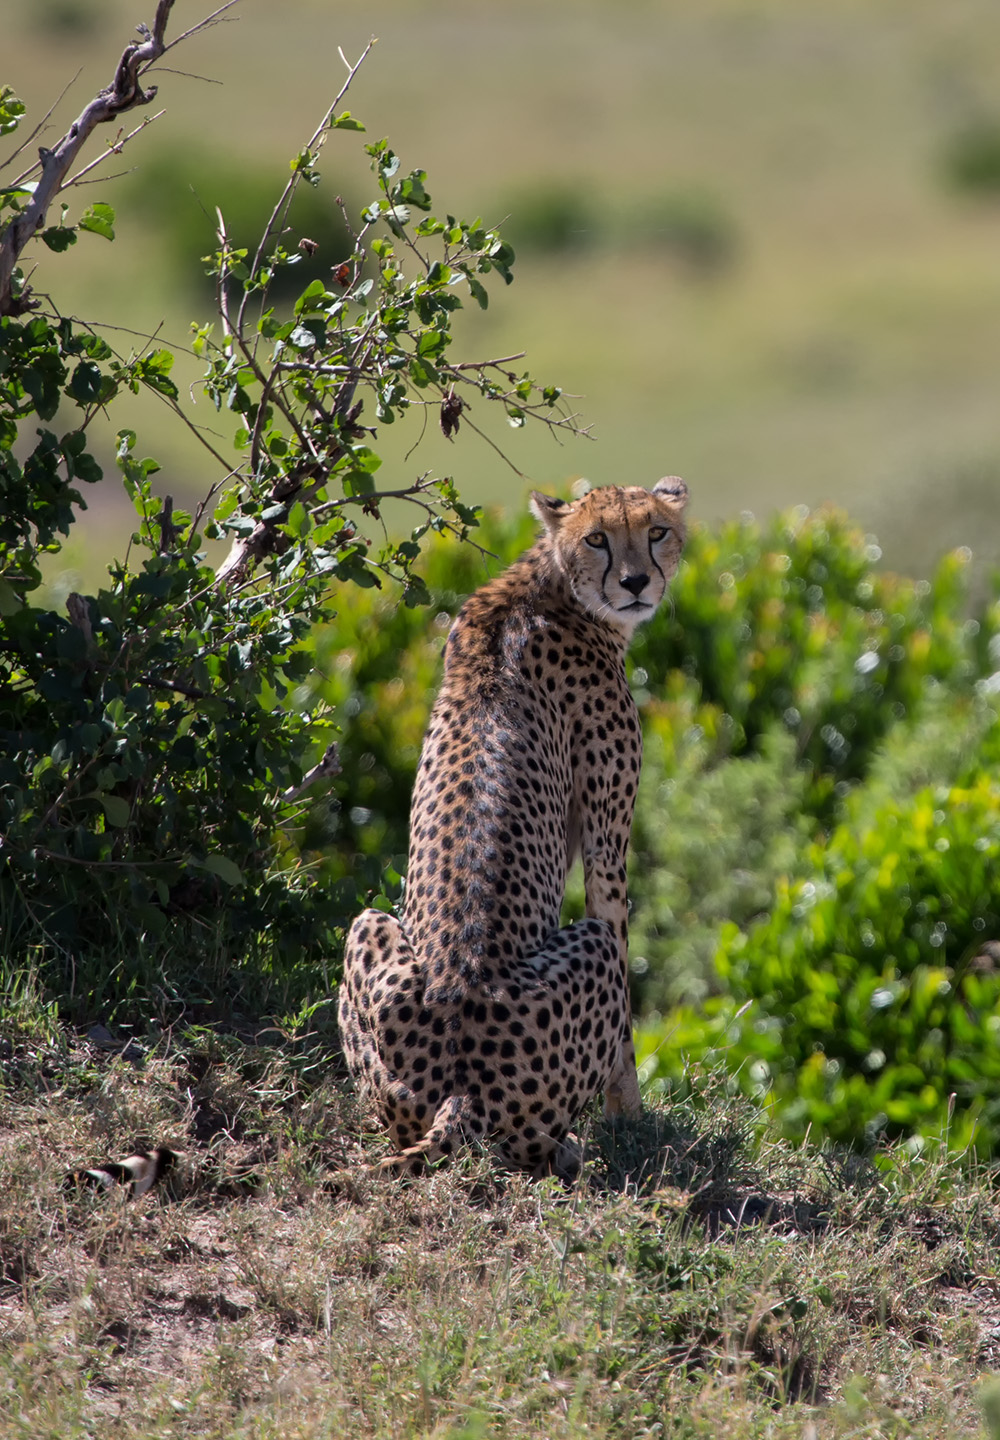 Photo: I believe cats to be spirits come to earth.   A cat, I am sure, could walk on a cloud without coming through.   ~ Jules Verne  Cheetah Female, Maasai Mara, Kenya  #CATURDAY +CATURDAY! curated by +Jules Falk Hunter , +Shantha Marie Fountain, +Cicely Robin Laing #catsallovertheworld +CATS all over the World curated by +Robert SKREINER #hqspanimals +HQSP Animals curated by +Joe Urbz , +Marina Versaci , +Nicole Best